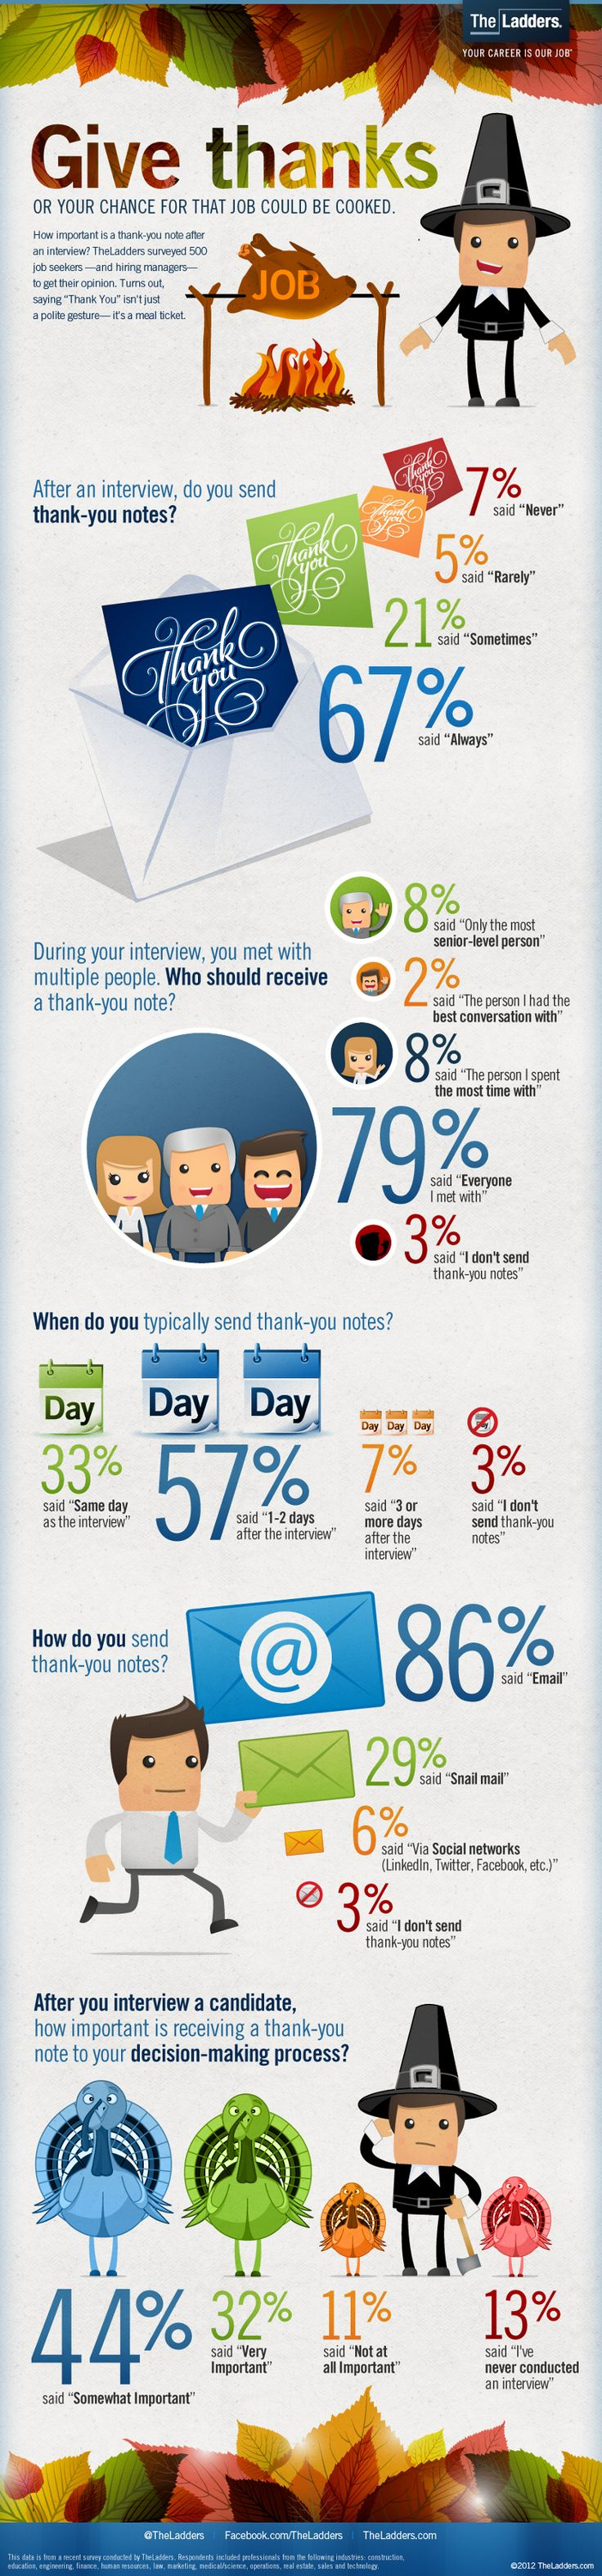 29 best Thank you notes at the Office images on Pinterest | Employee ...